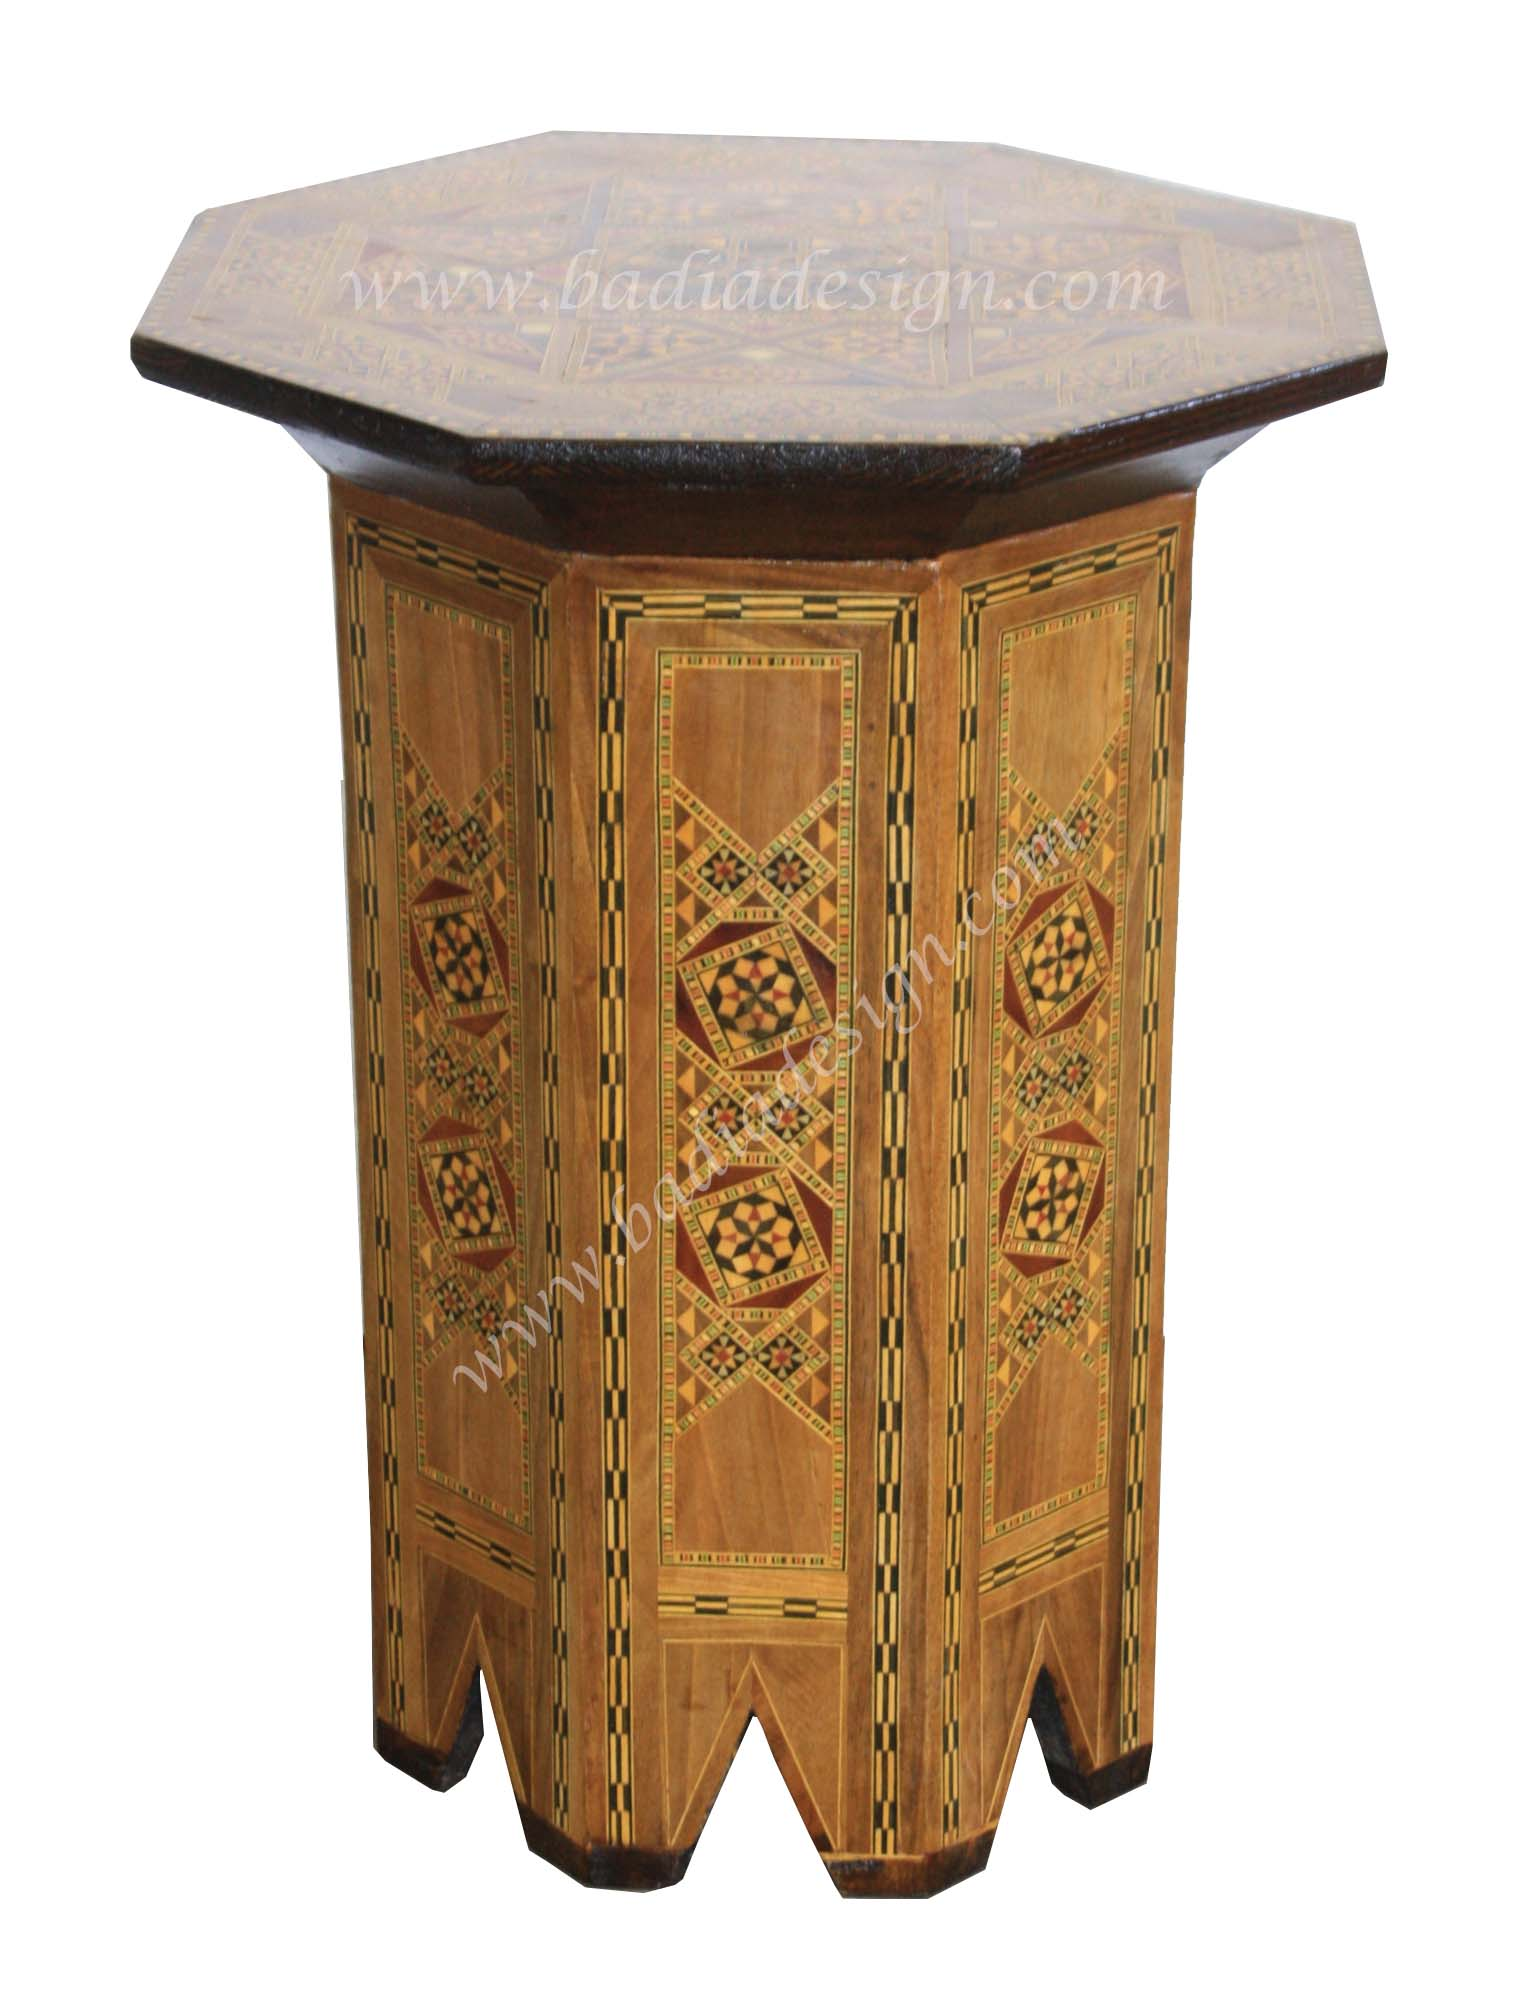 syrian-inlaid-side-table-mop-st061-1.jpg